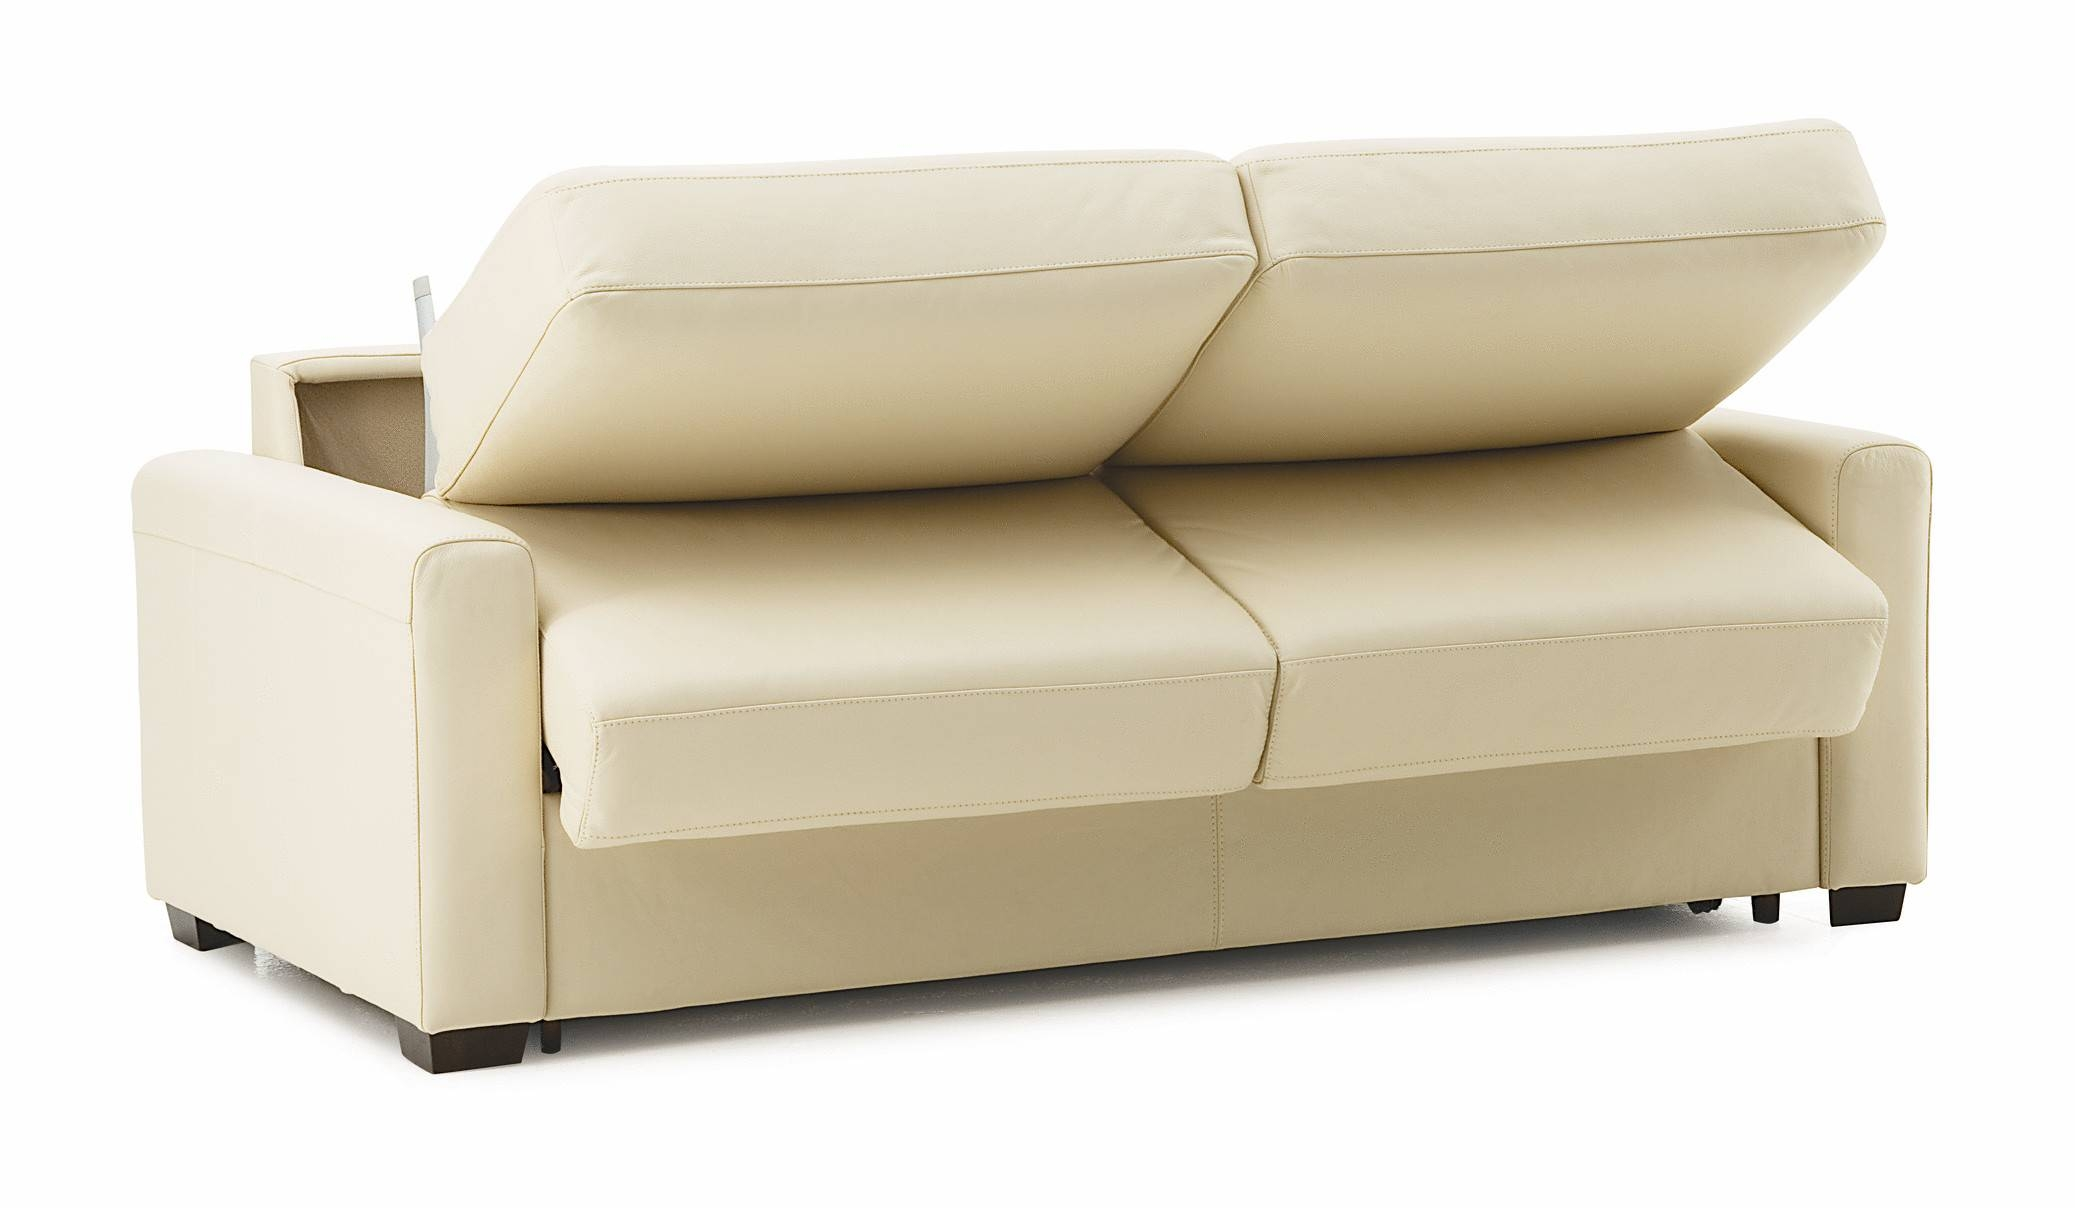 Furniture Home: Rv Sofa Sleepers And Rv Sofa Sleepers For Sale Intended For Sleeper Sofas (View 5 of 15)